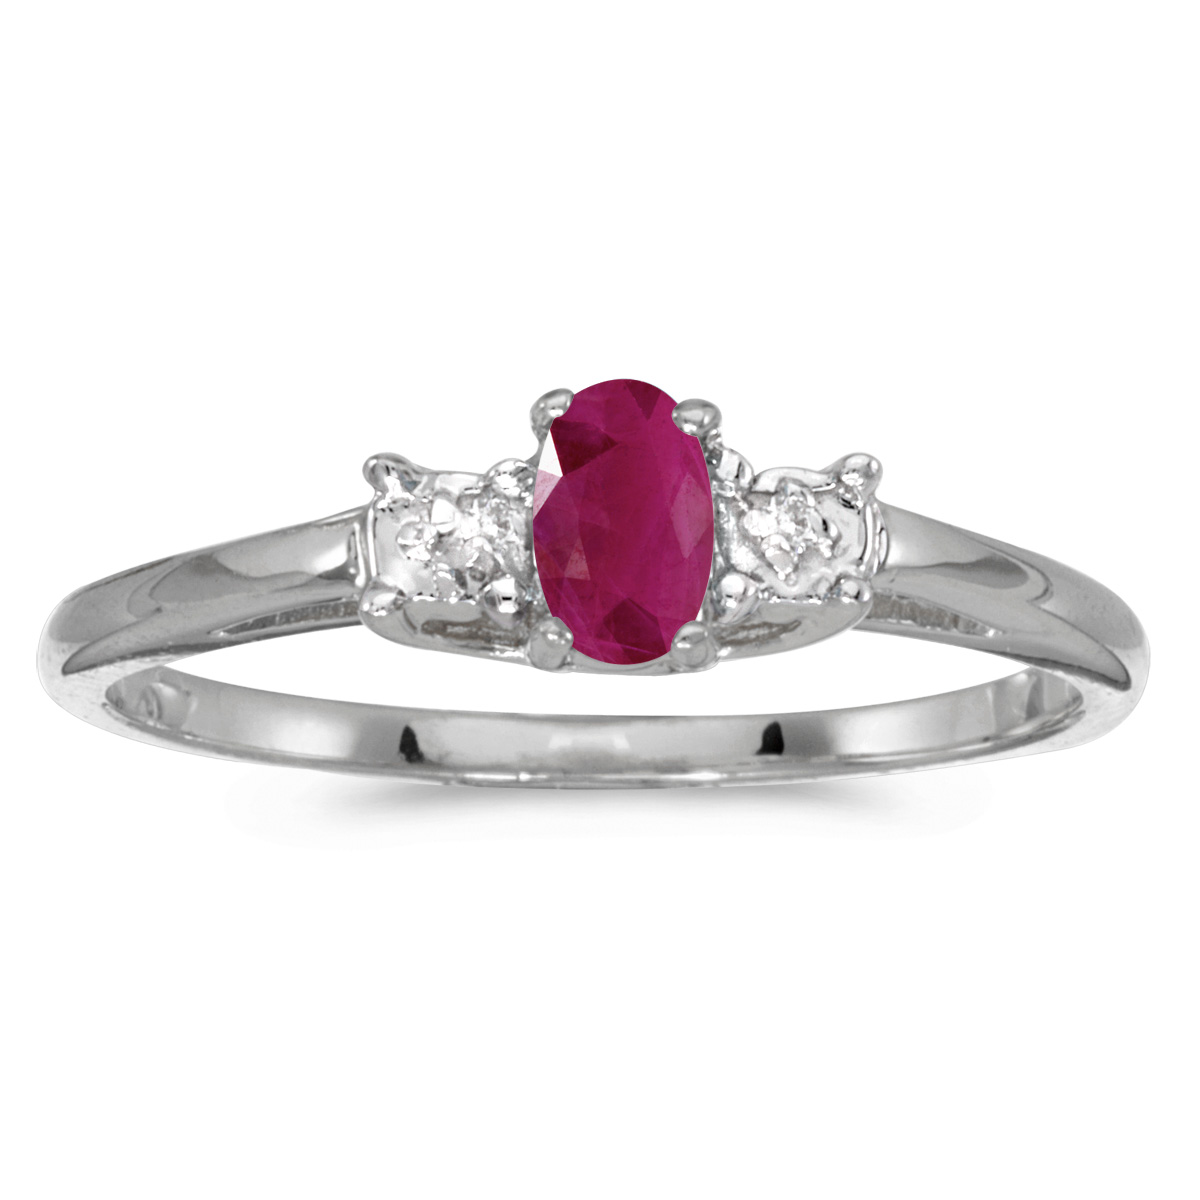 14k White Gold Oval Ruby And Diamond Ring by